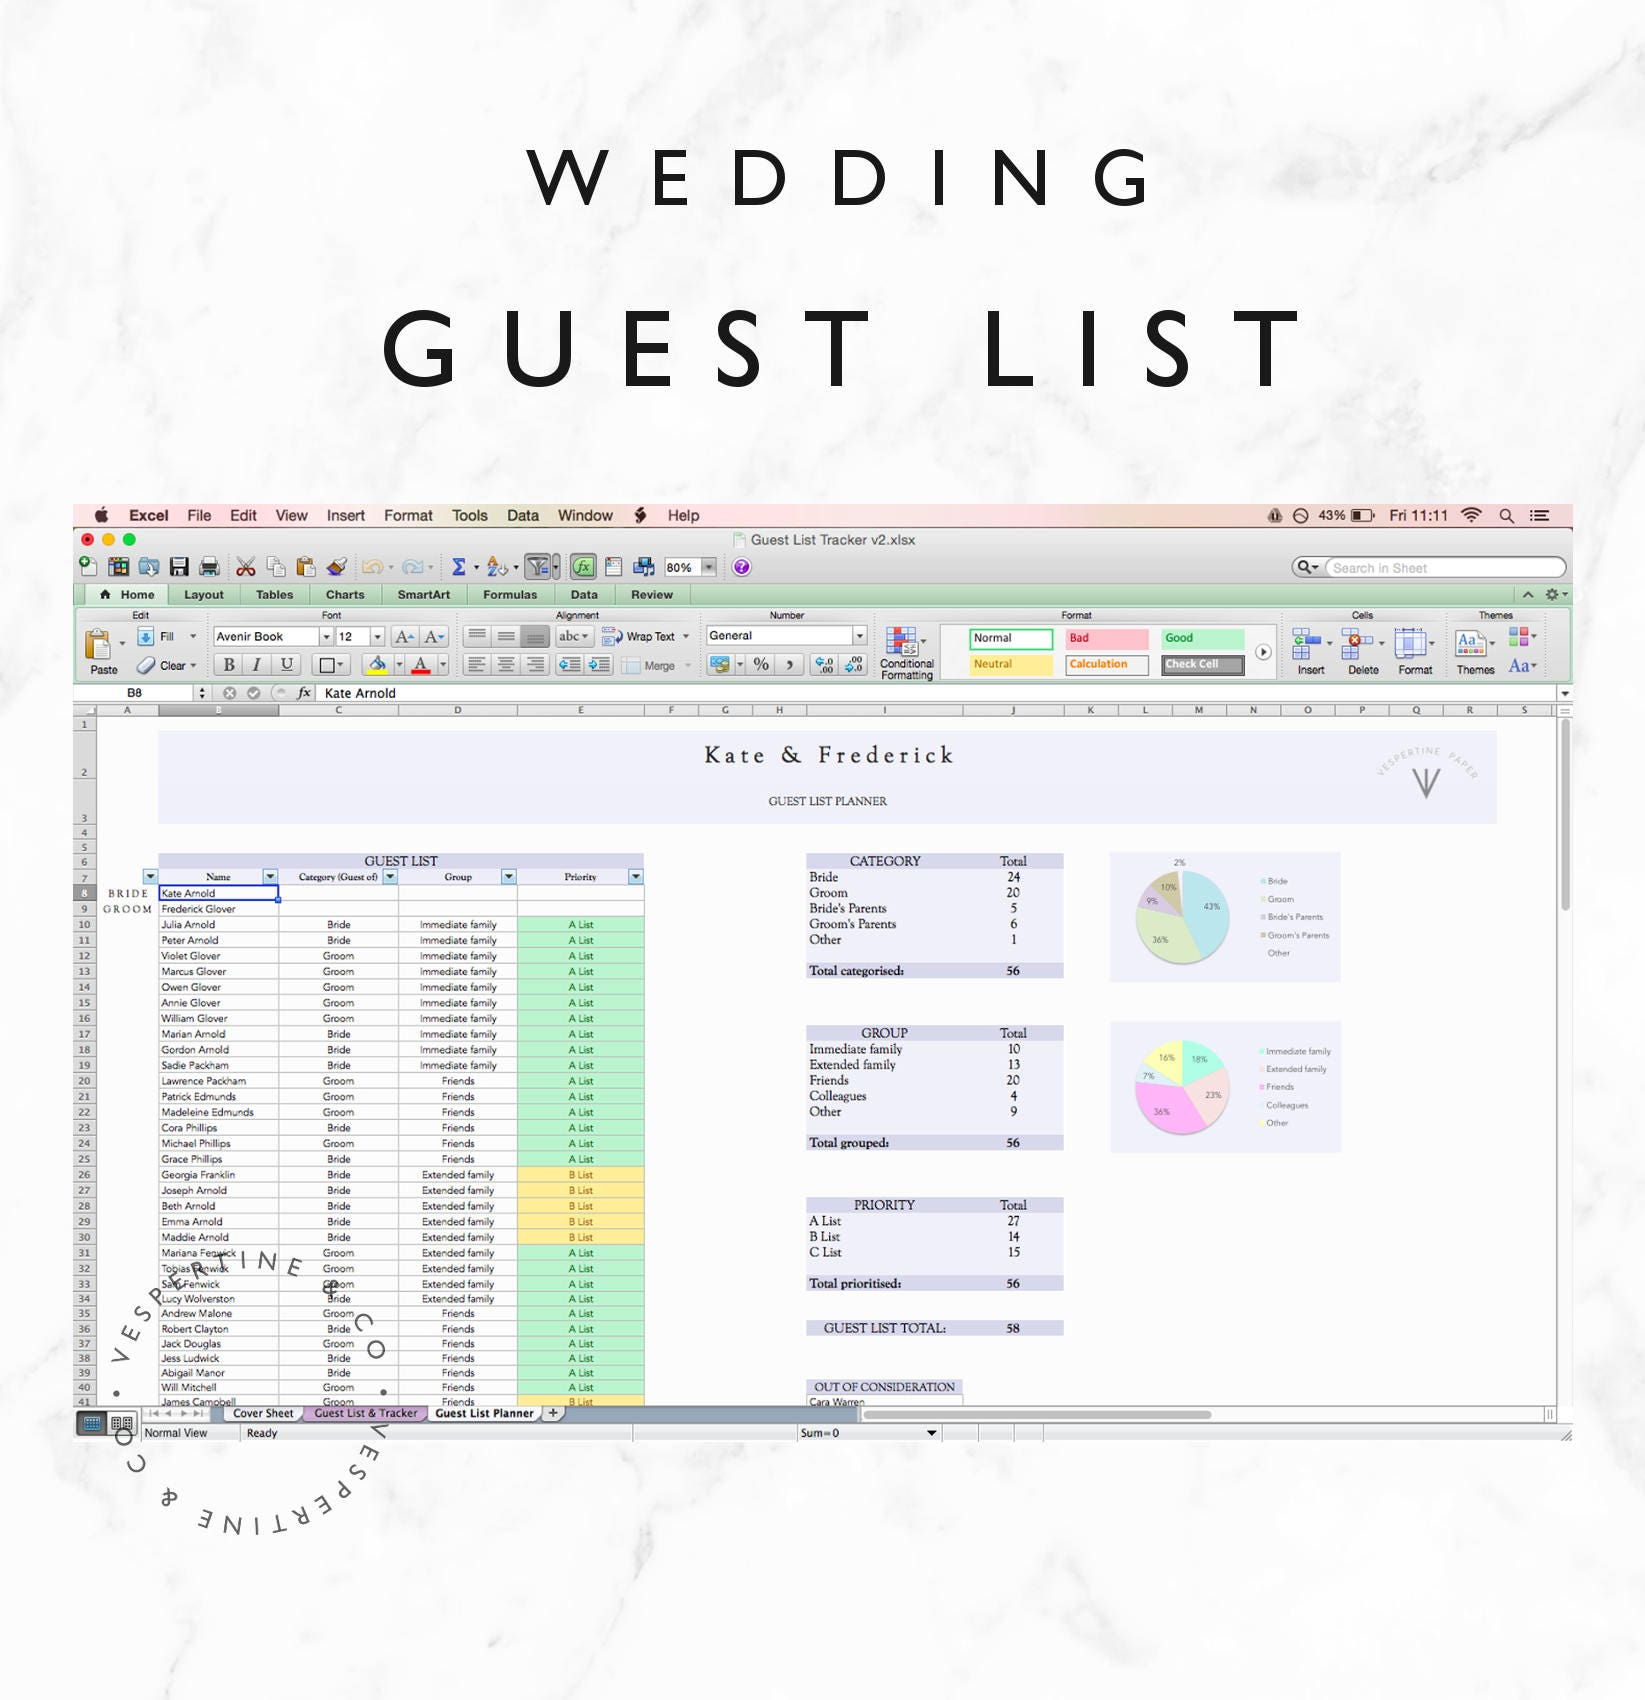 Wedding Guest List Planner and Guest List Tracker Excel